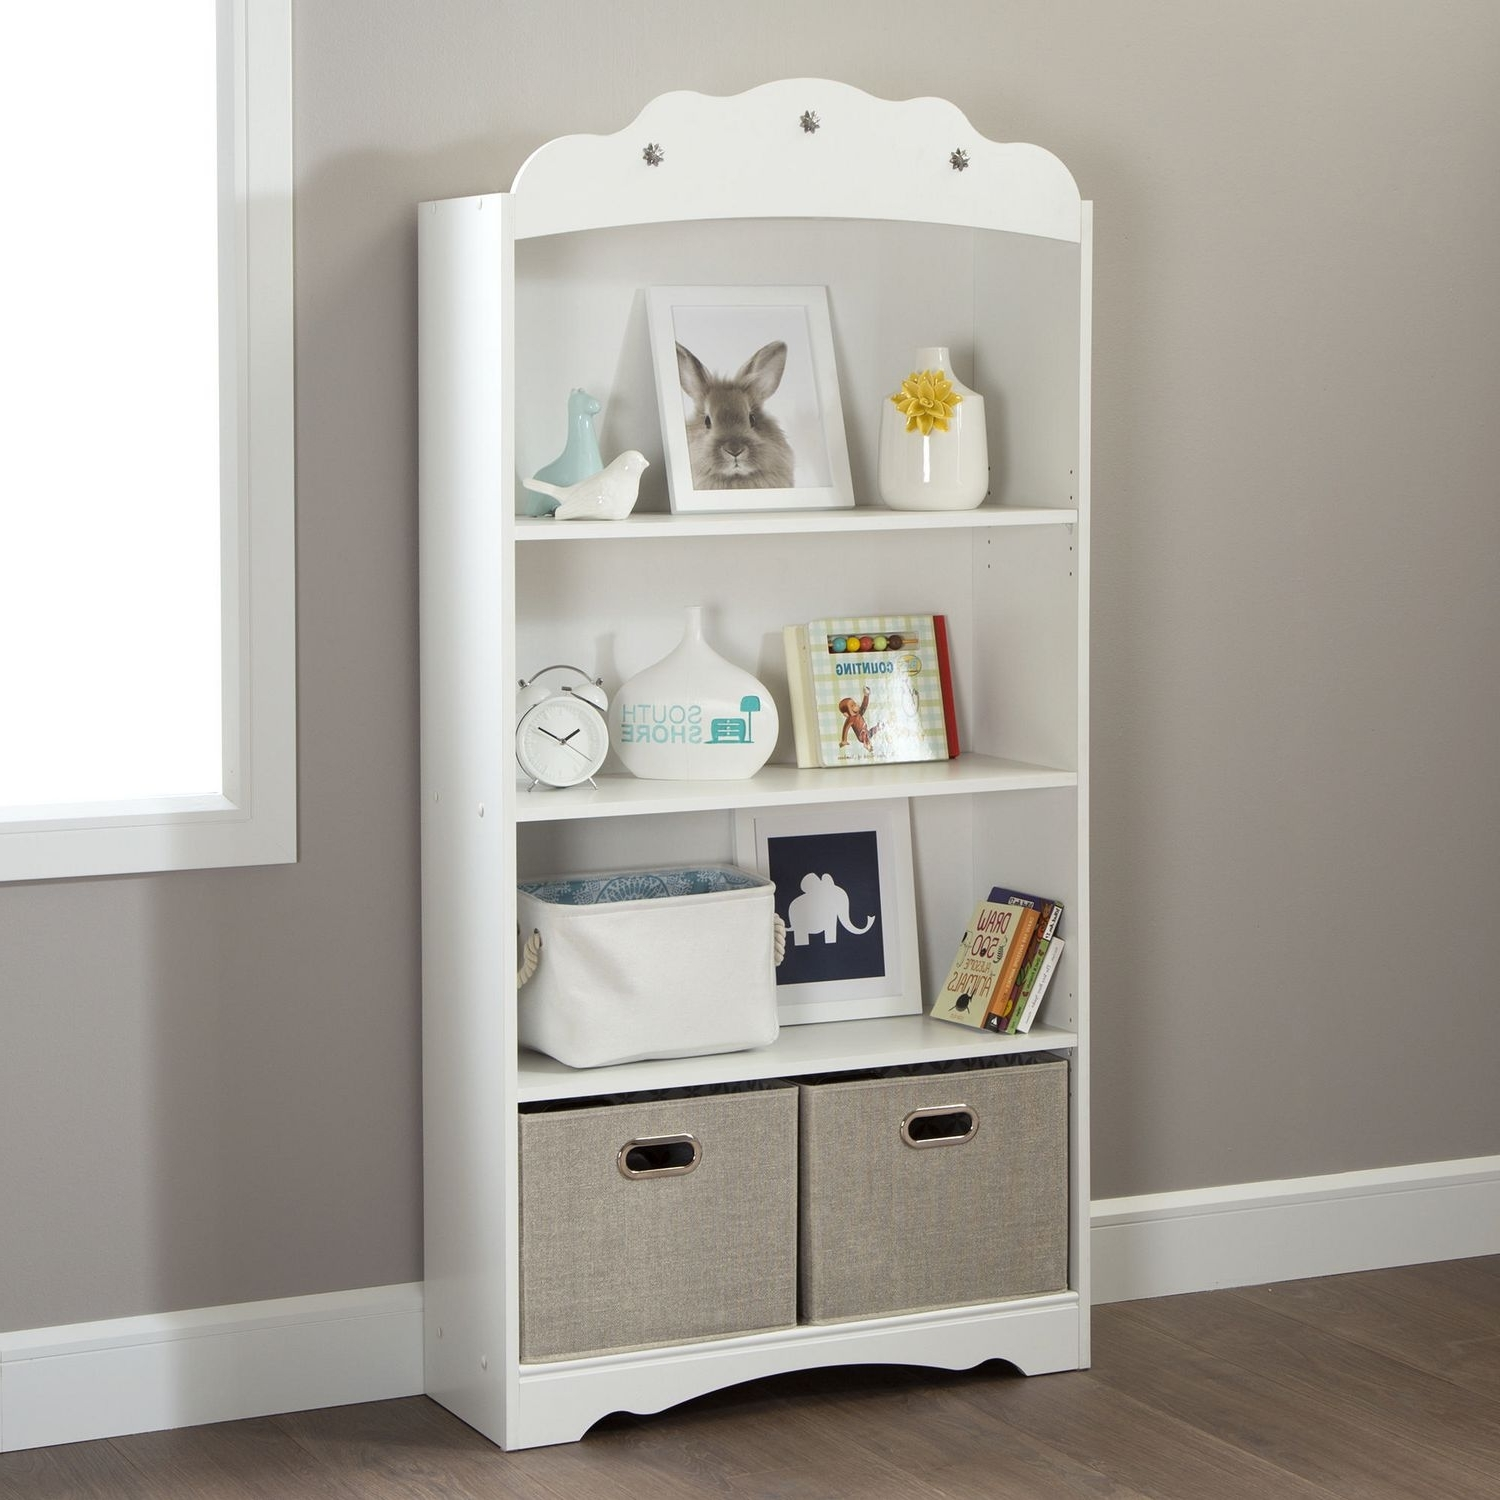 Walmart Canada For Well Liked South Shore Bookcases (View 15 of 15)